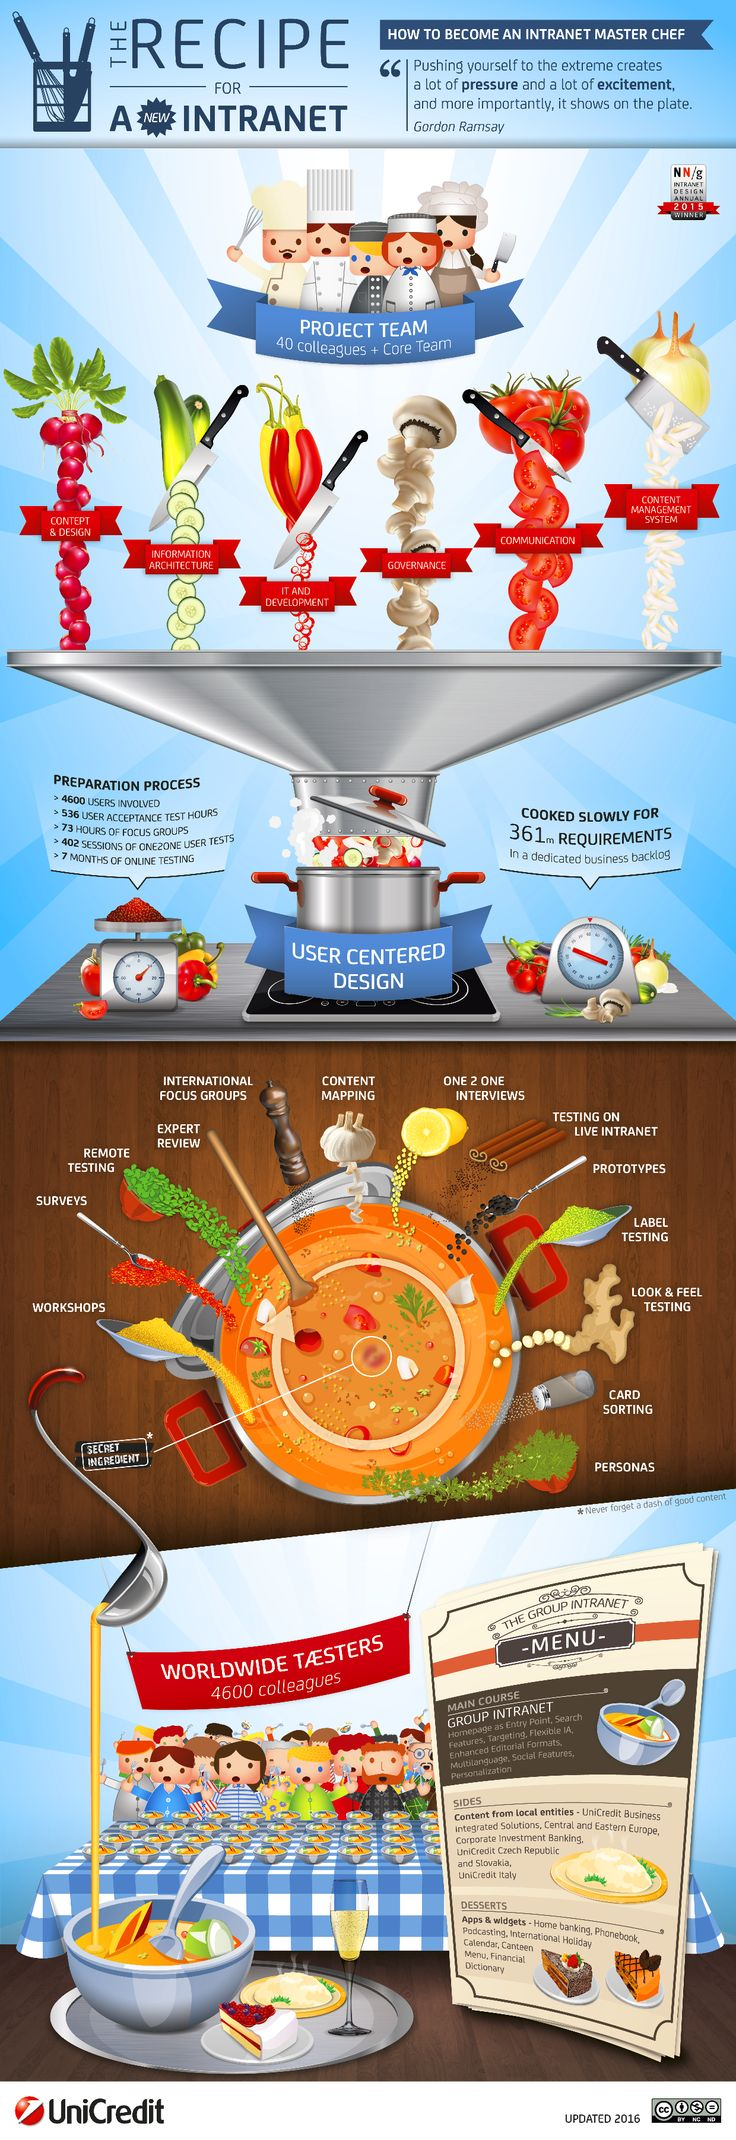 The Recipe for a new #Intranet #UniCredit #GroupIntranet #UX #UserCenteredDesign #IntranetDesignAnnual #NielsenNorman [Infographic – Updated 2016]